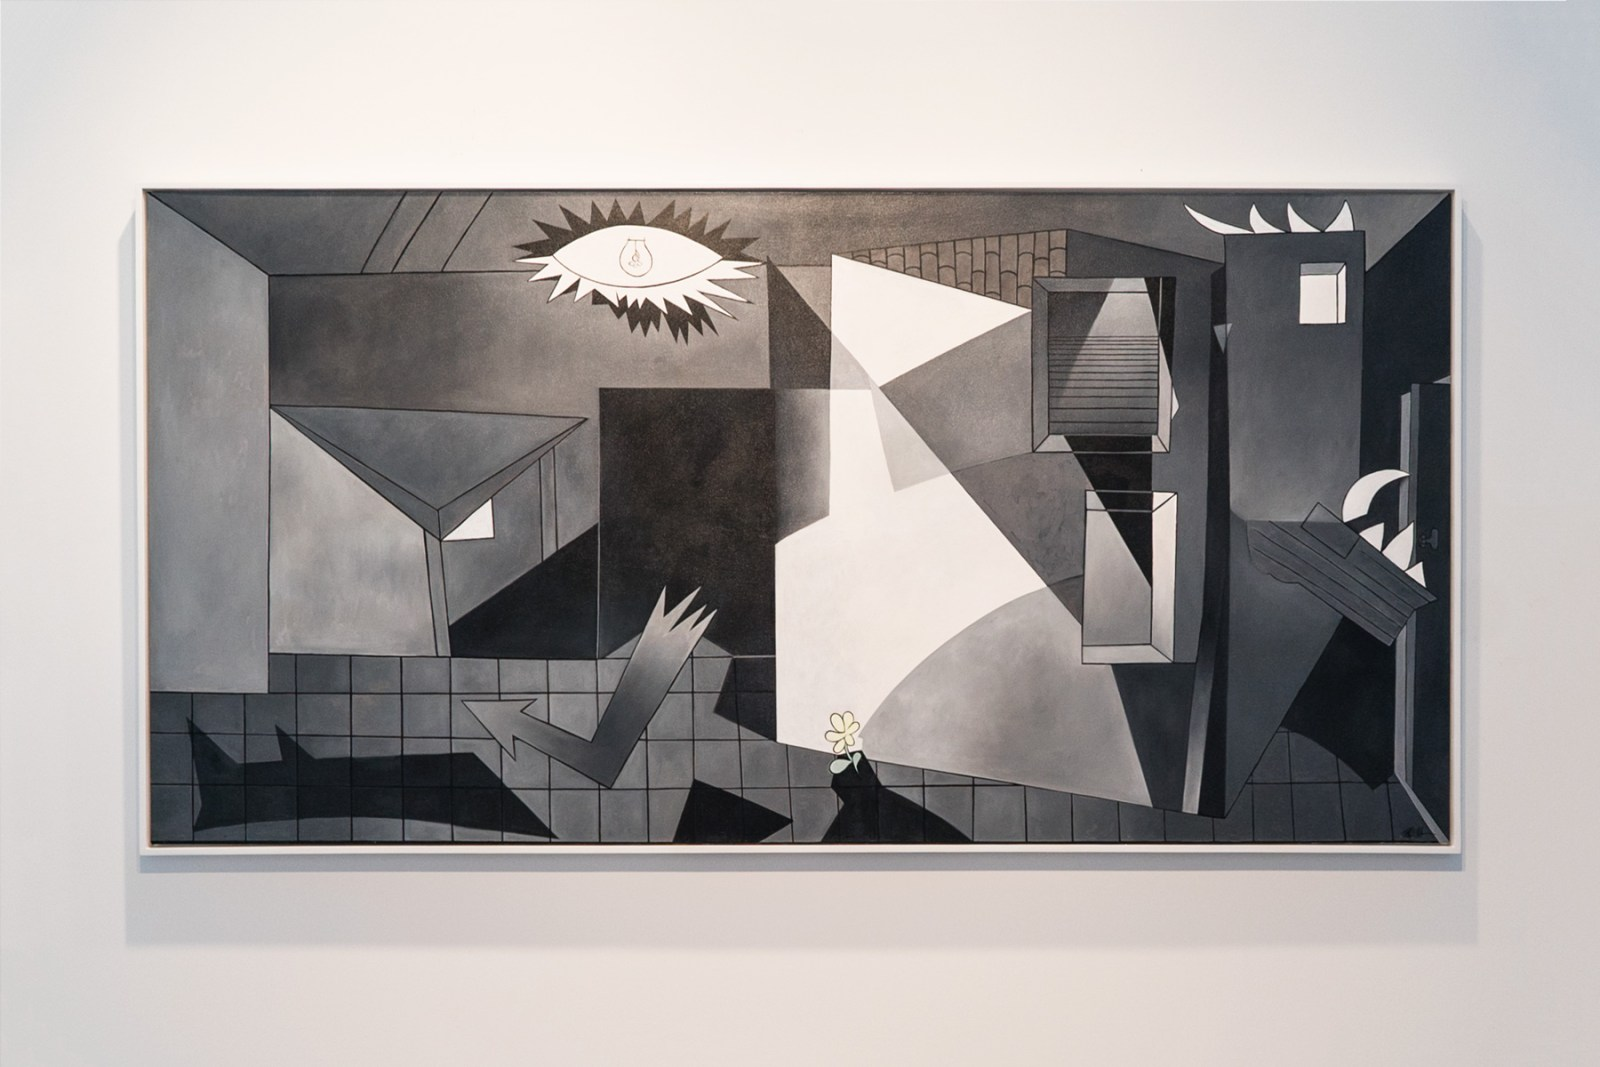 ron-english-on-pablo-picasso-guernica-5